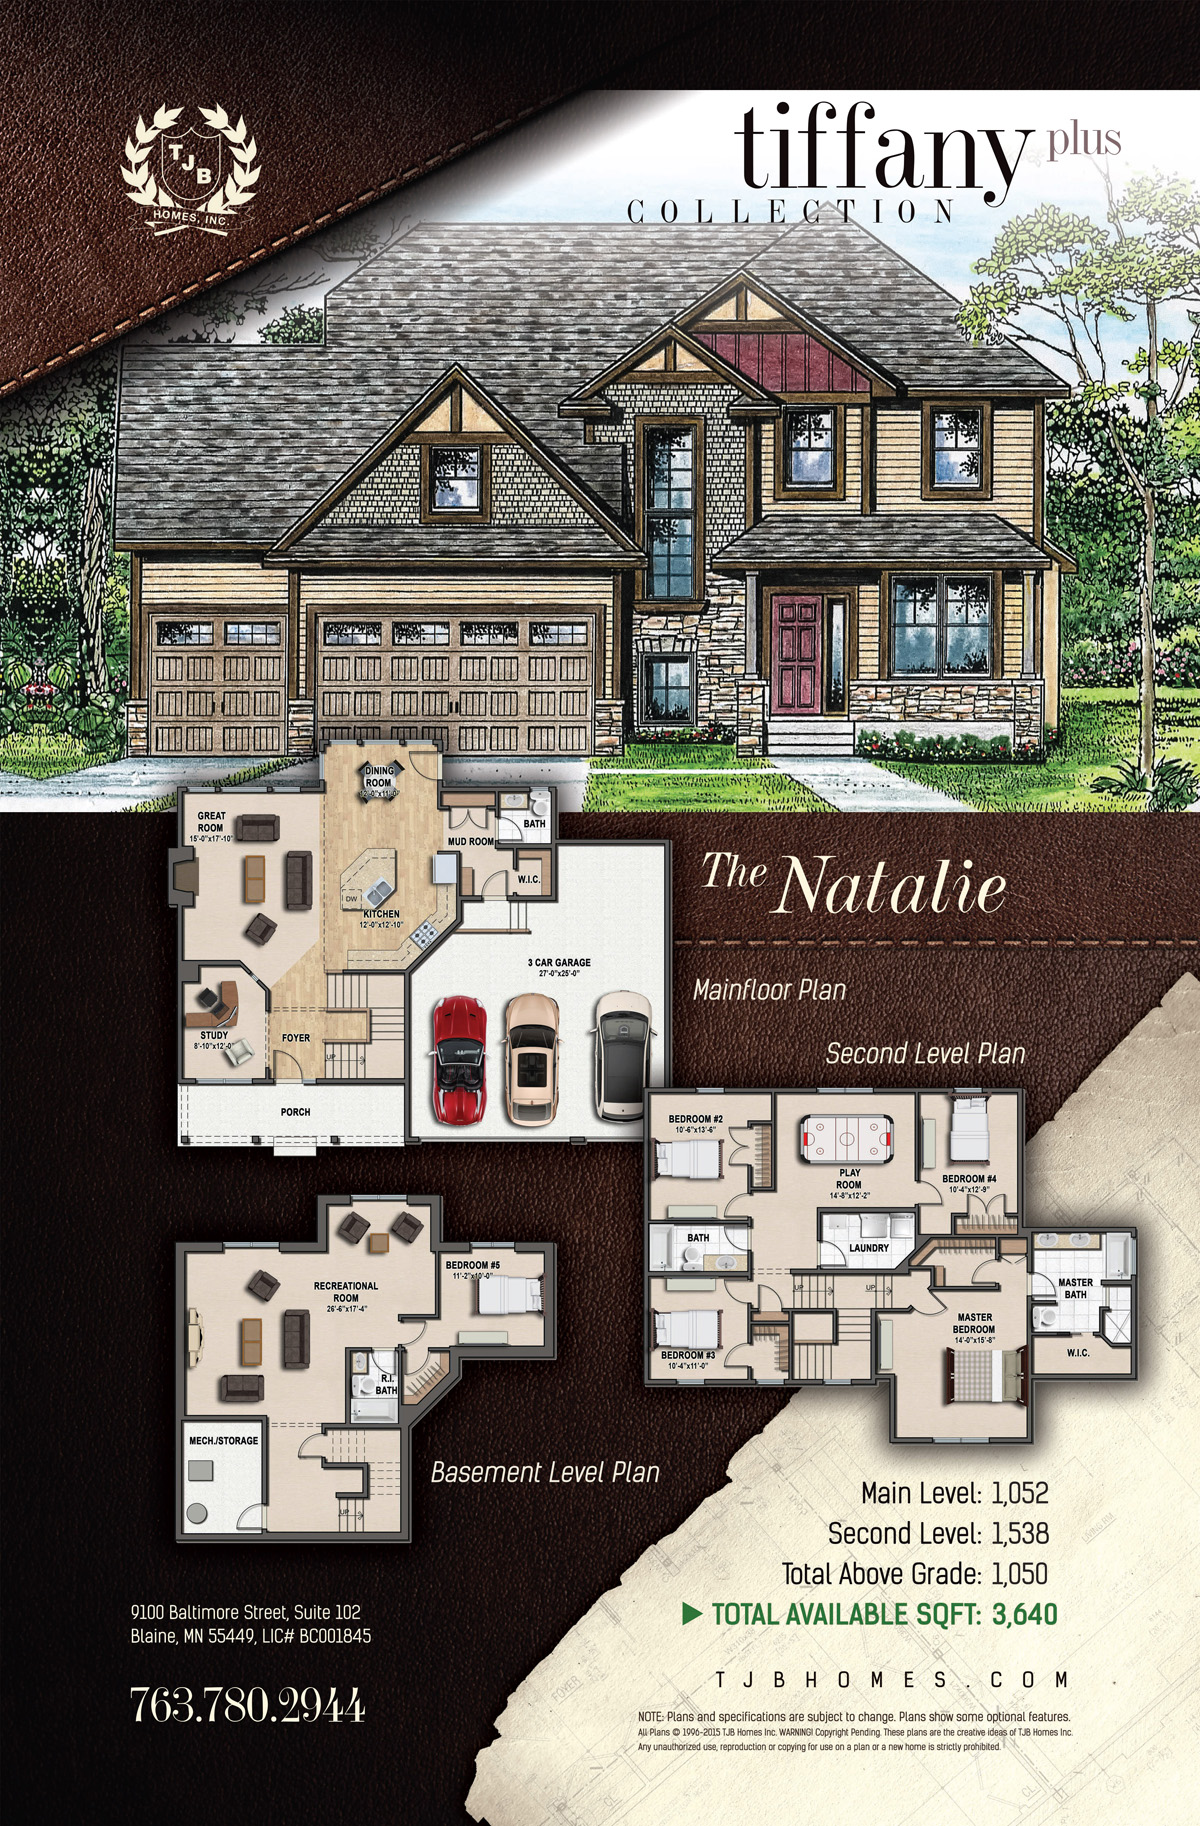 Tiffany Plus Collection Home Plans - The Natalie